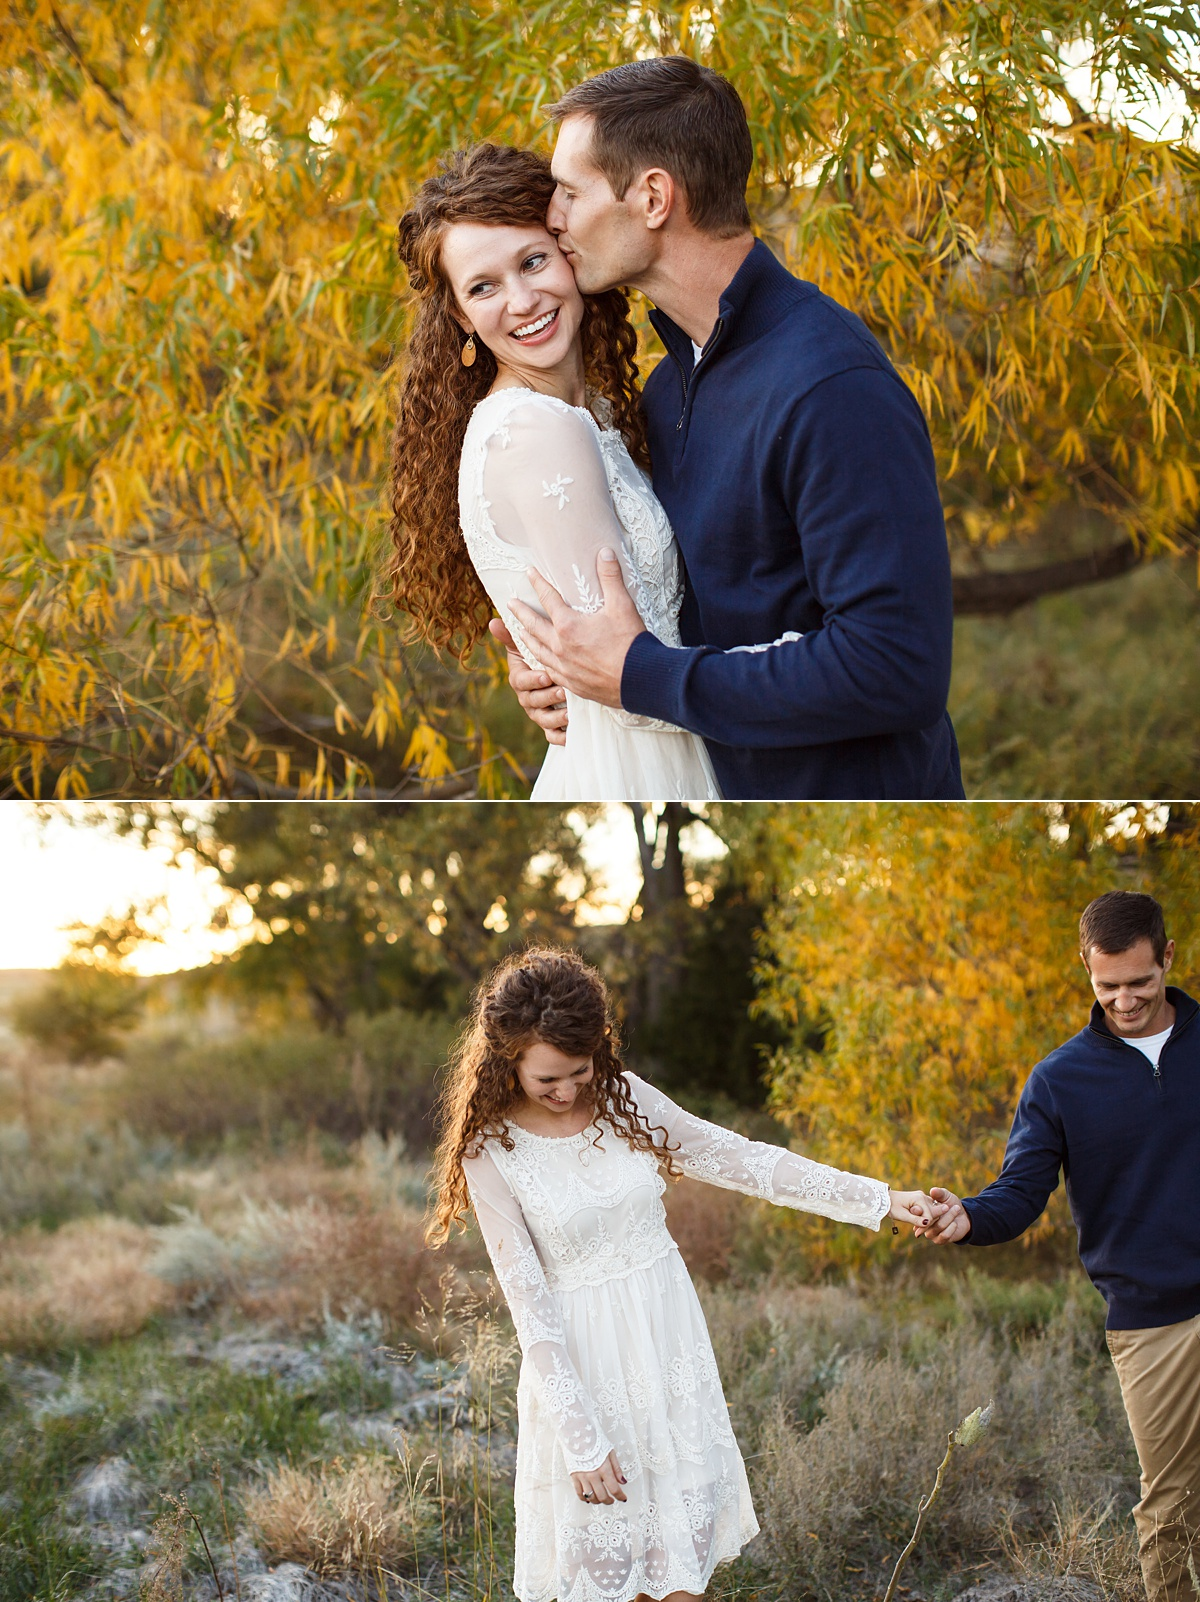 Lake_Wilson_Engagement_Session_0006.JPG